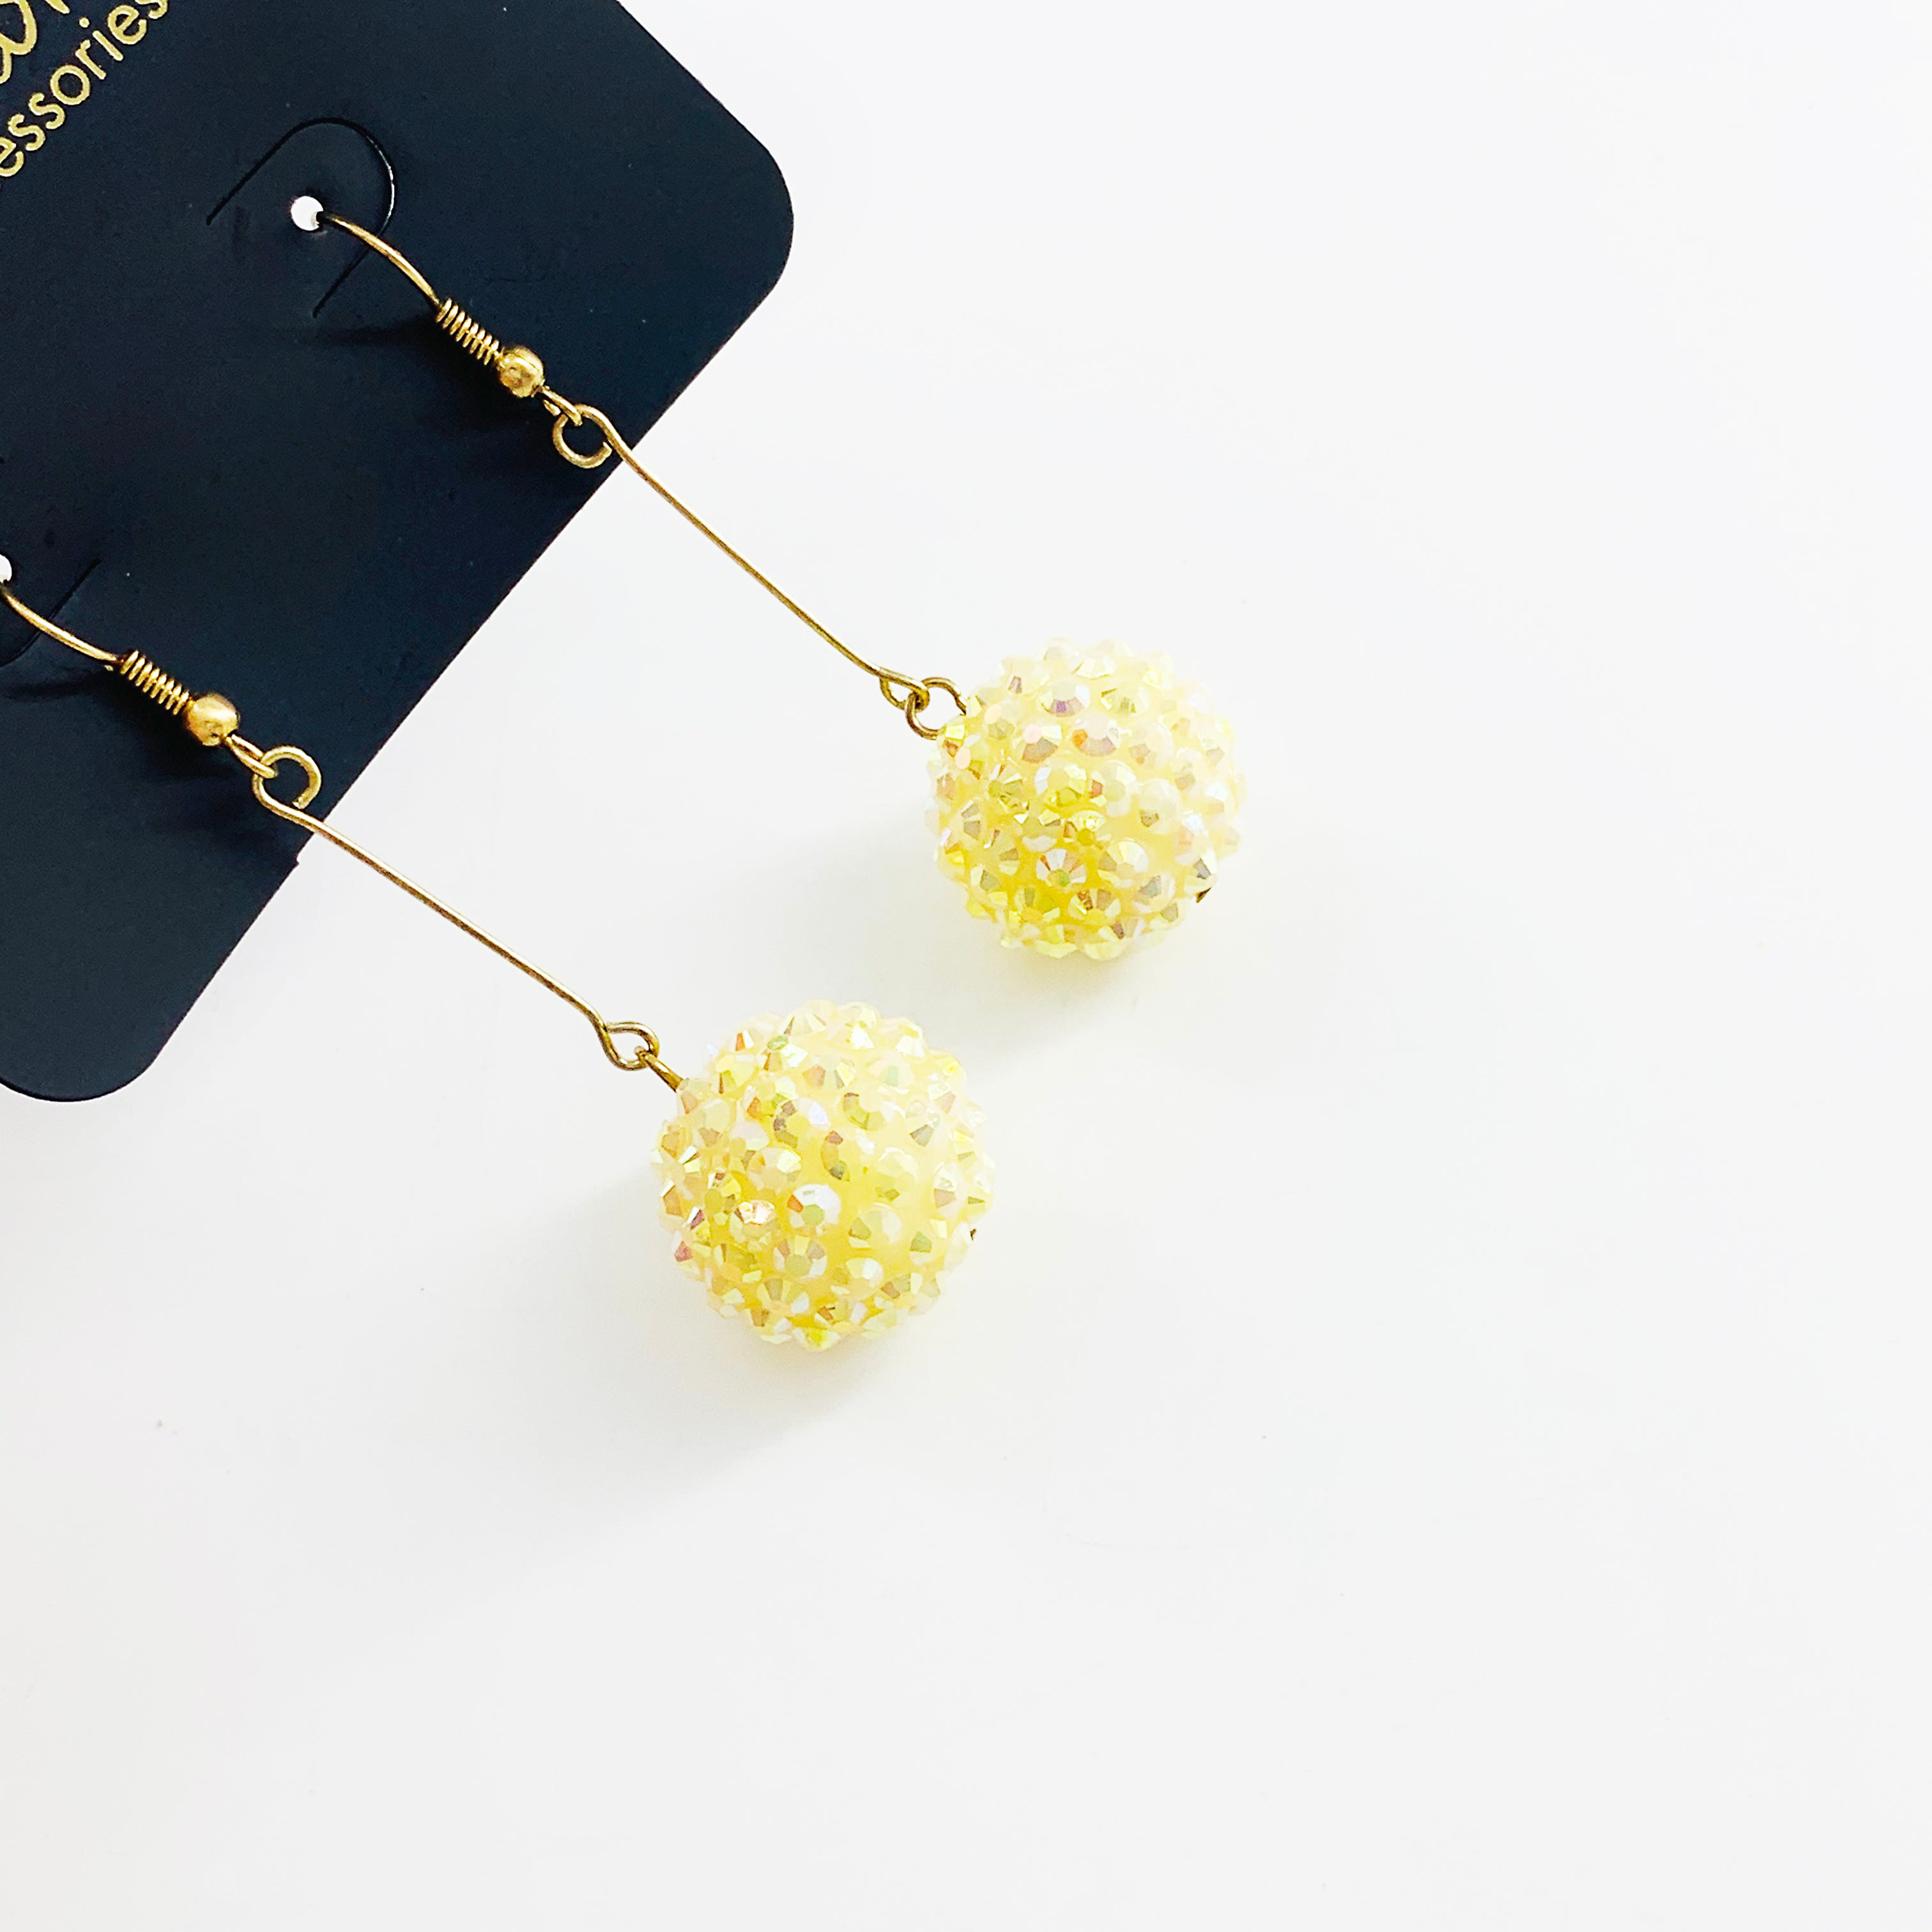 Sparkly yellow ball earrings